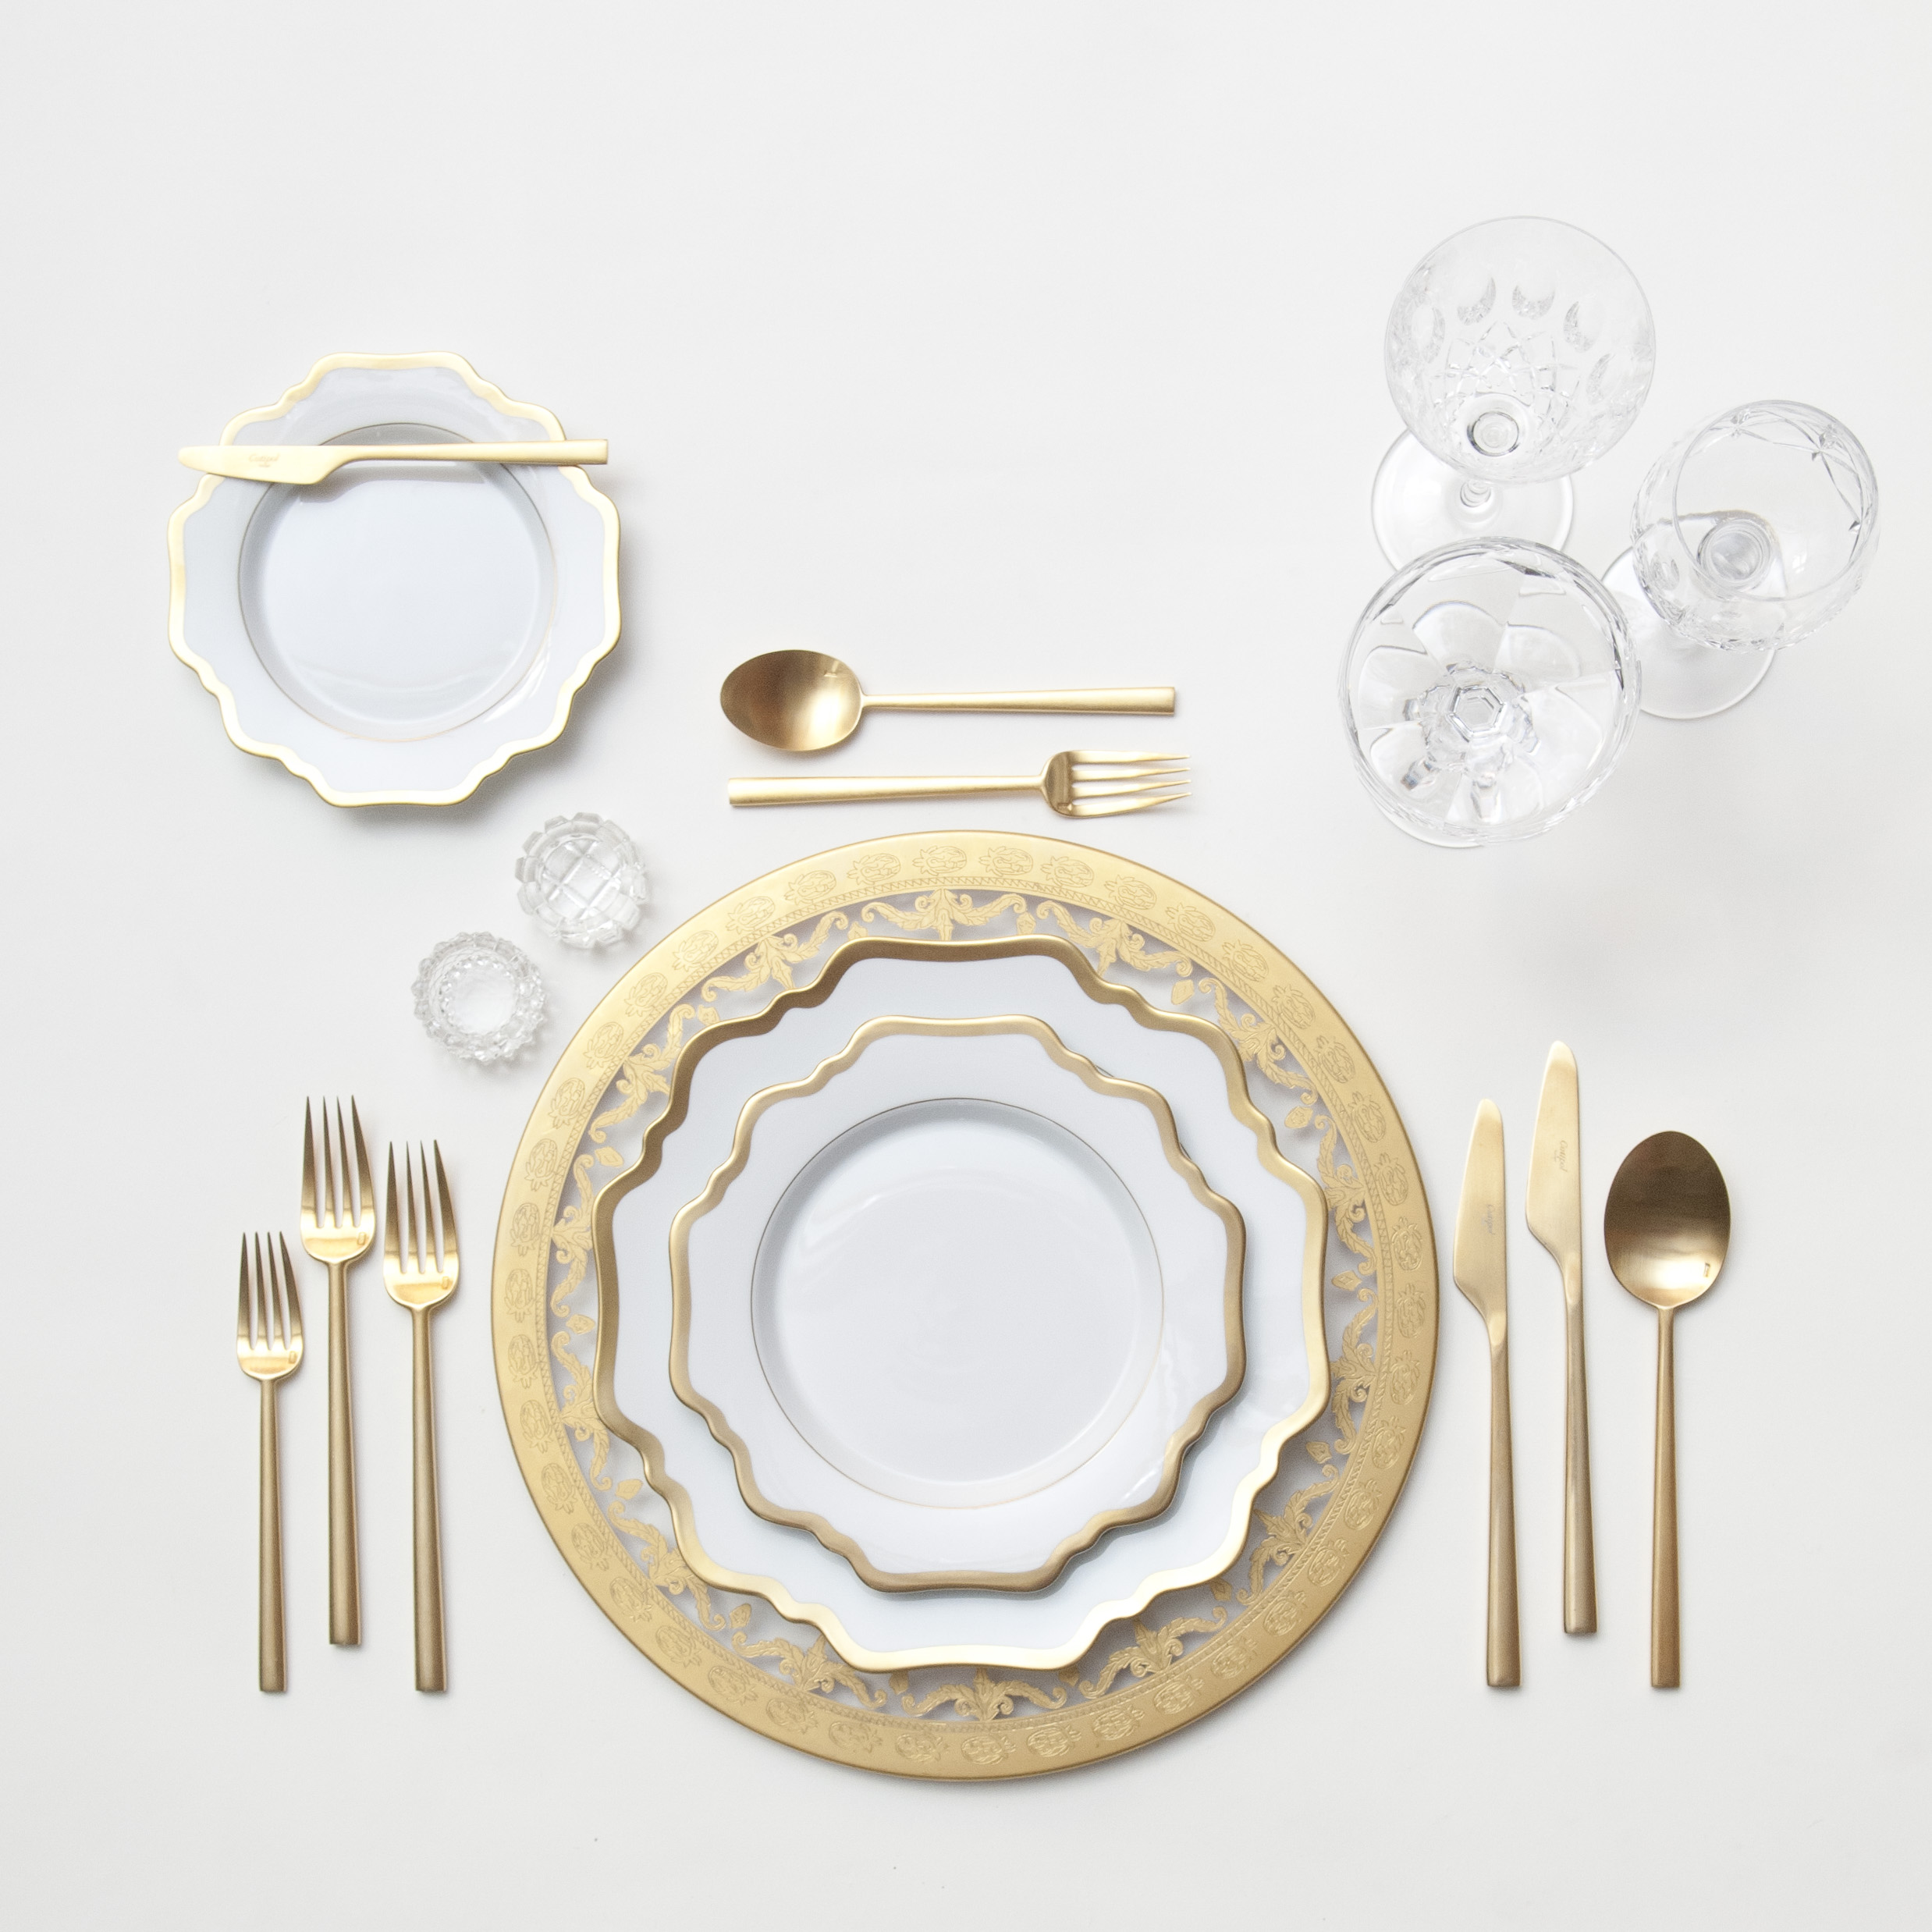 RENT: Versailles Glass Chargers in 24k Gold + Anna Weatherley Dinnerware in White/Gold + Rondo Flatware in Brushed 24k Gold + Vintage Cut Crystal Goblets + Vintage Champagne Coupes + Antique Crystal Salt Cellars  SHOP:Anna Weatherley Dinnerware in White/Gold + Rondo Flatware in Brushed 24k Gold